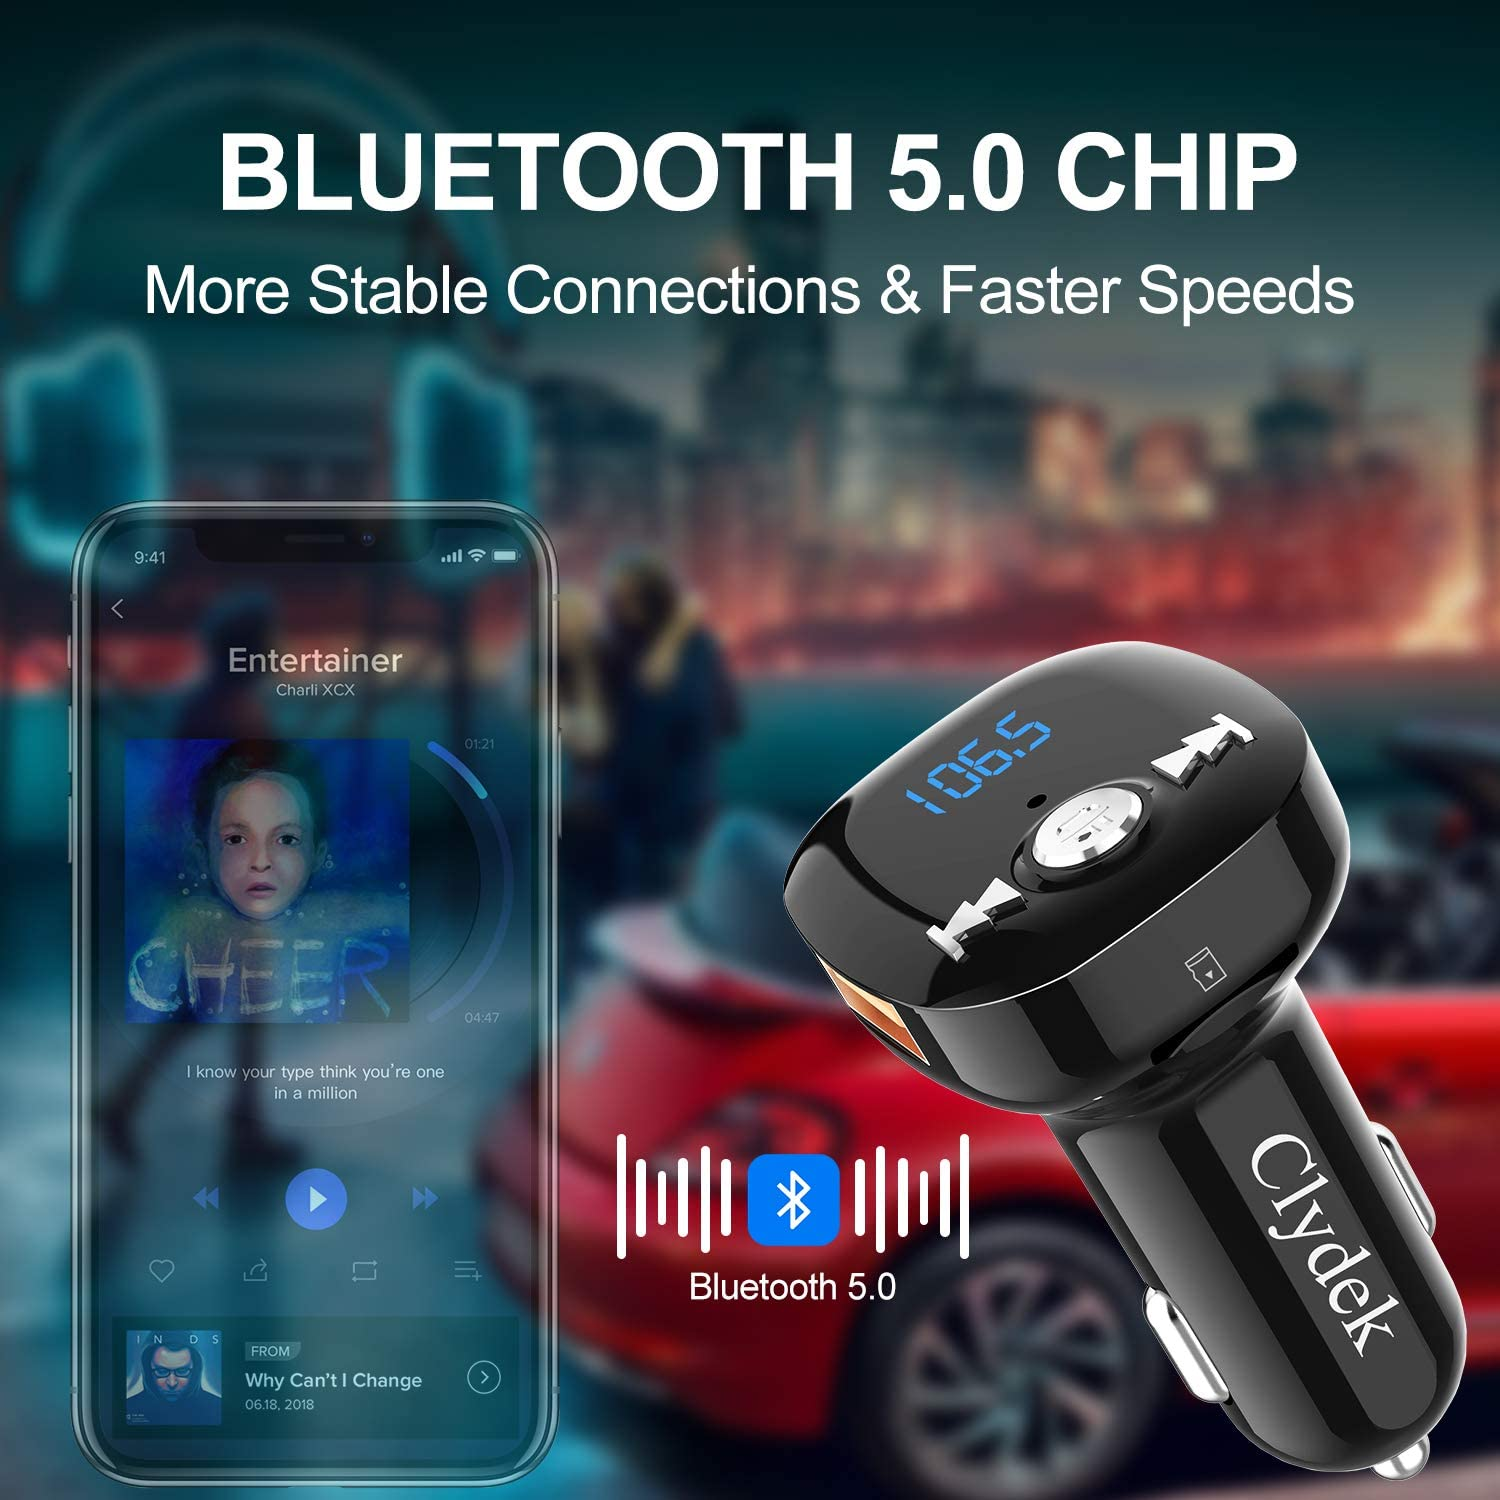 Bluetooth FM Transmitter for Car Dual USB /& QC3.0 Fast Charging Music Player Support USB Drive /& TF Card Clydek V5.0 Bluetooth Car Adapter Wireless Radio Adapter/with Hand-Free Calling